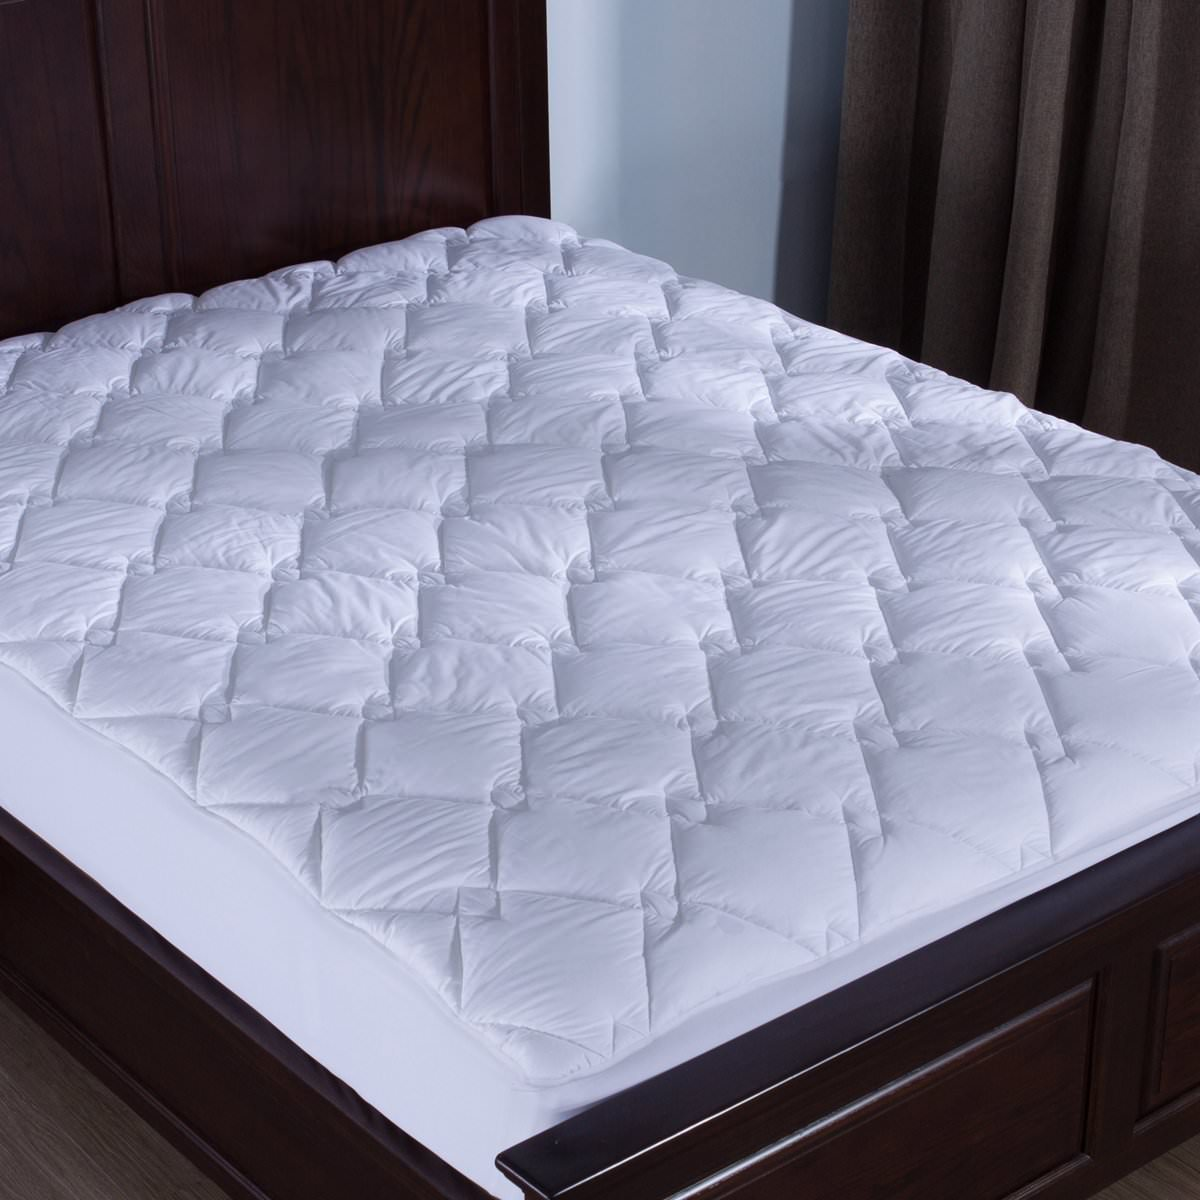 Puredown Down Alternative Mattress Pad/Topper-Quilted-100% Cotton Top, Rhombic Pattern, Full Size